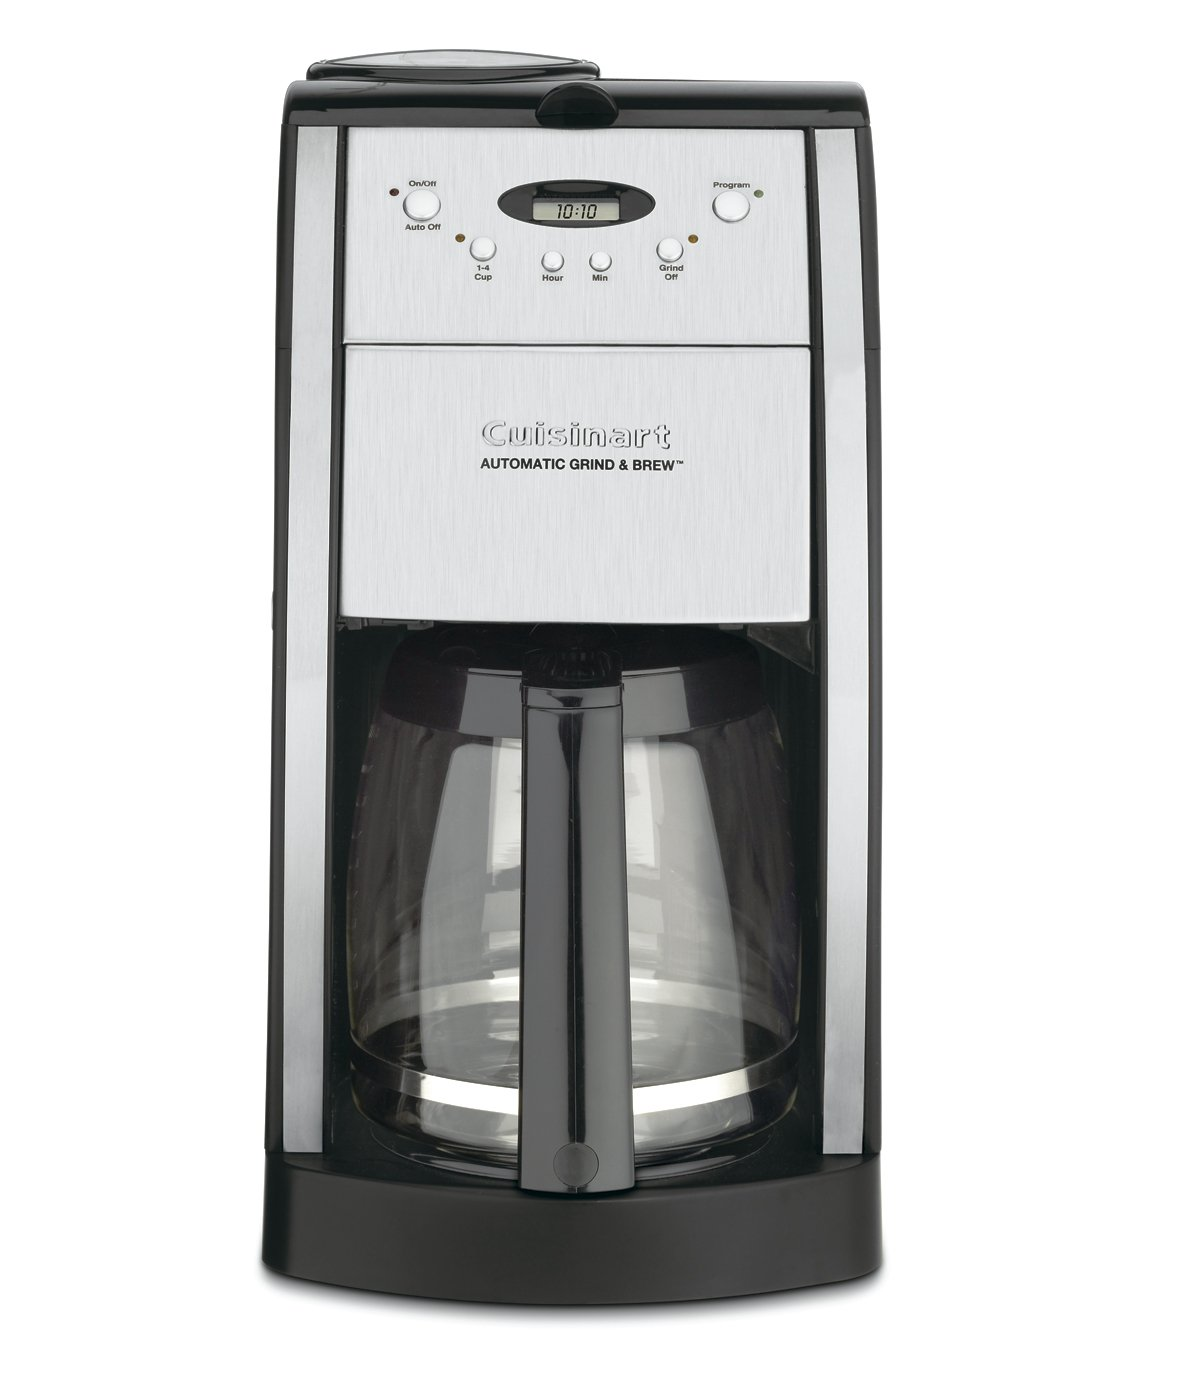 The Best Cuisinart Coffee Maker With Grinder Seekyt